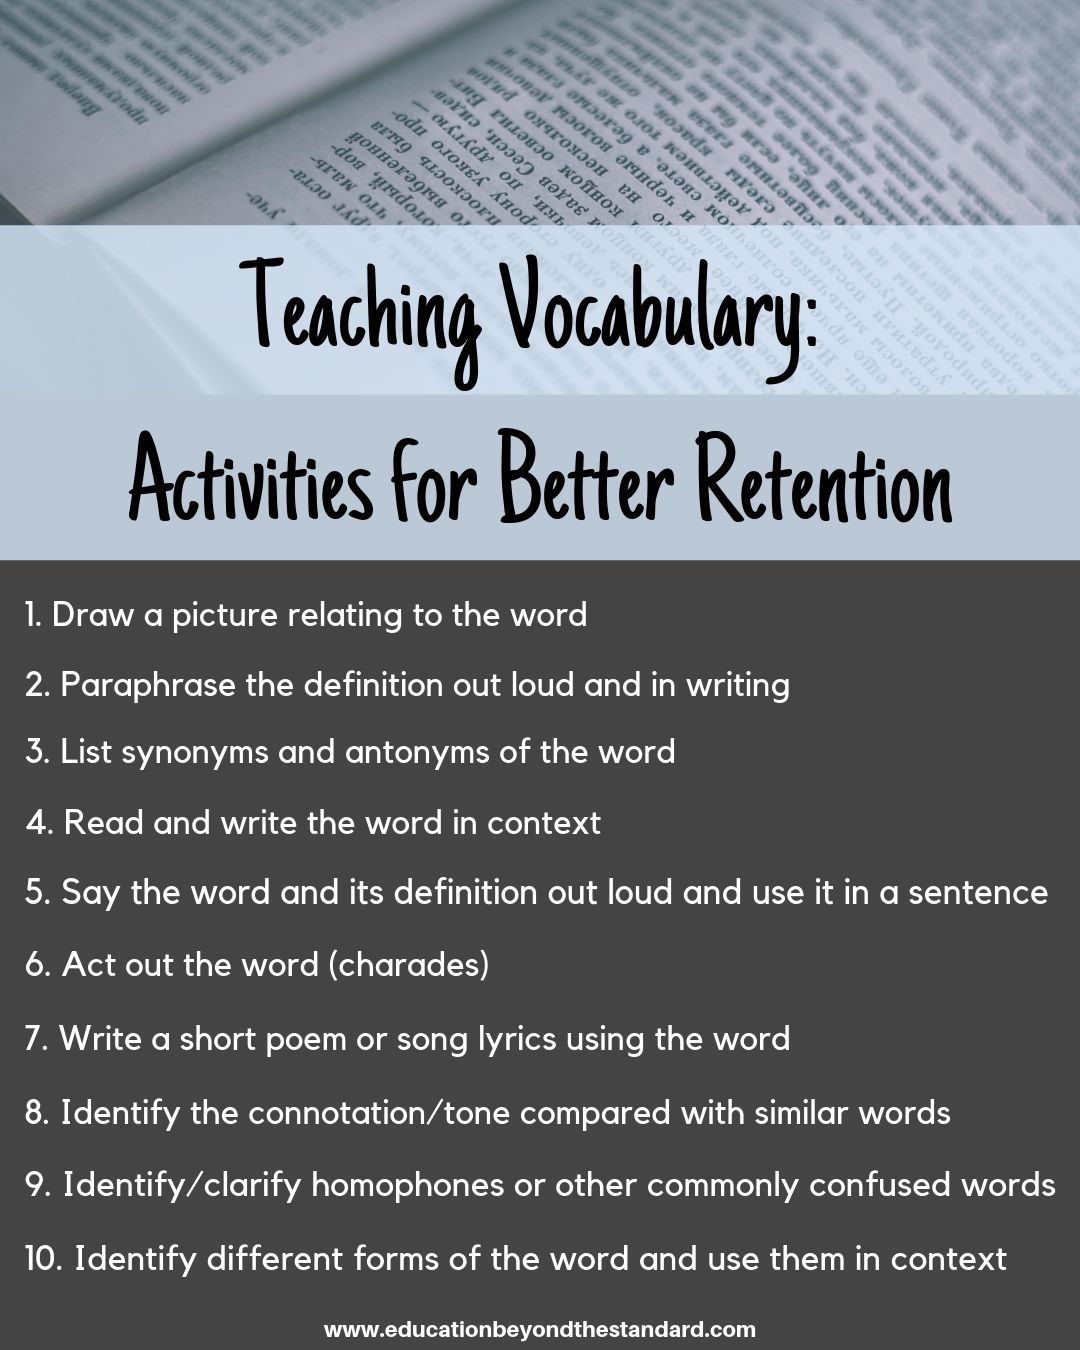 Best Practice And Activitie For Teaching Vocabulary Word Instruction Paraphrasing In Oral Communication